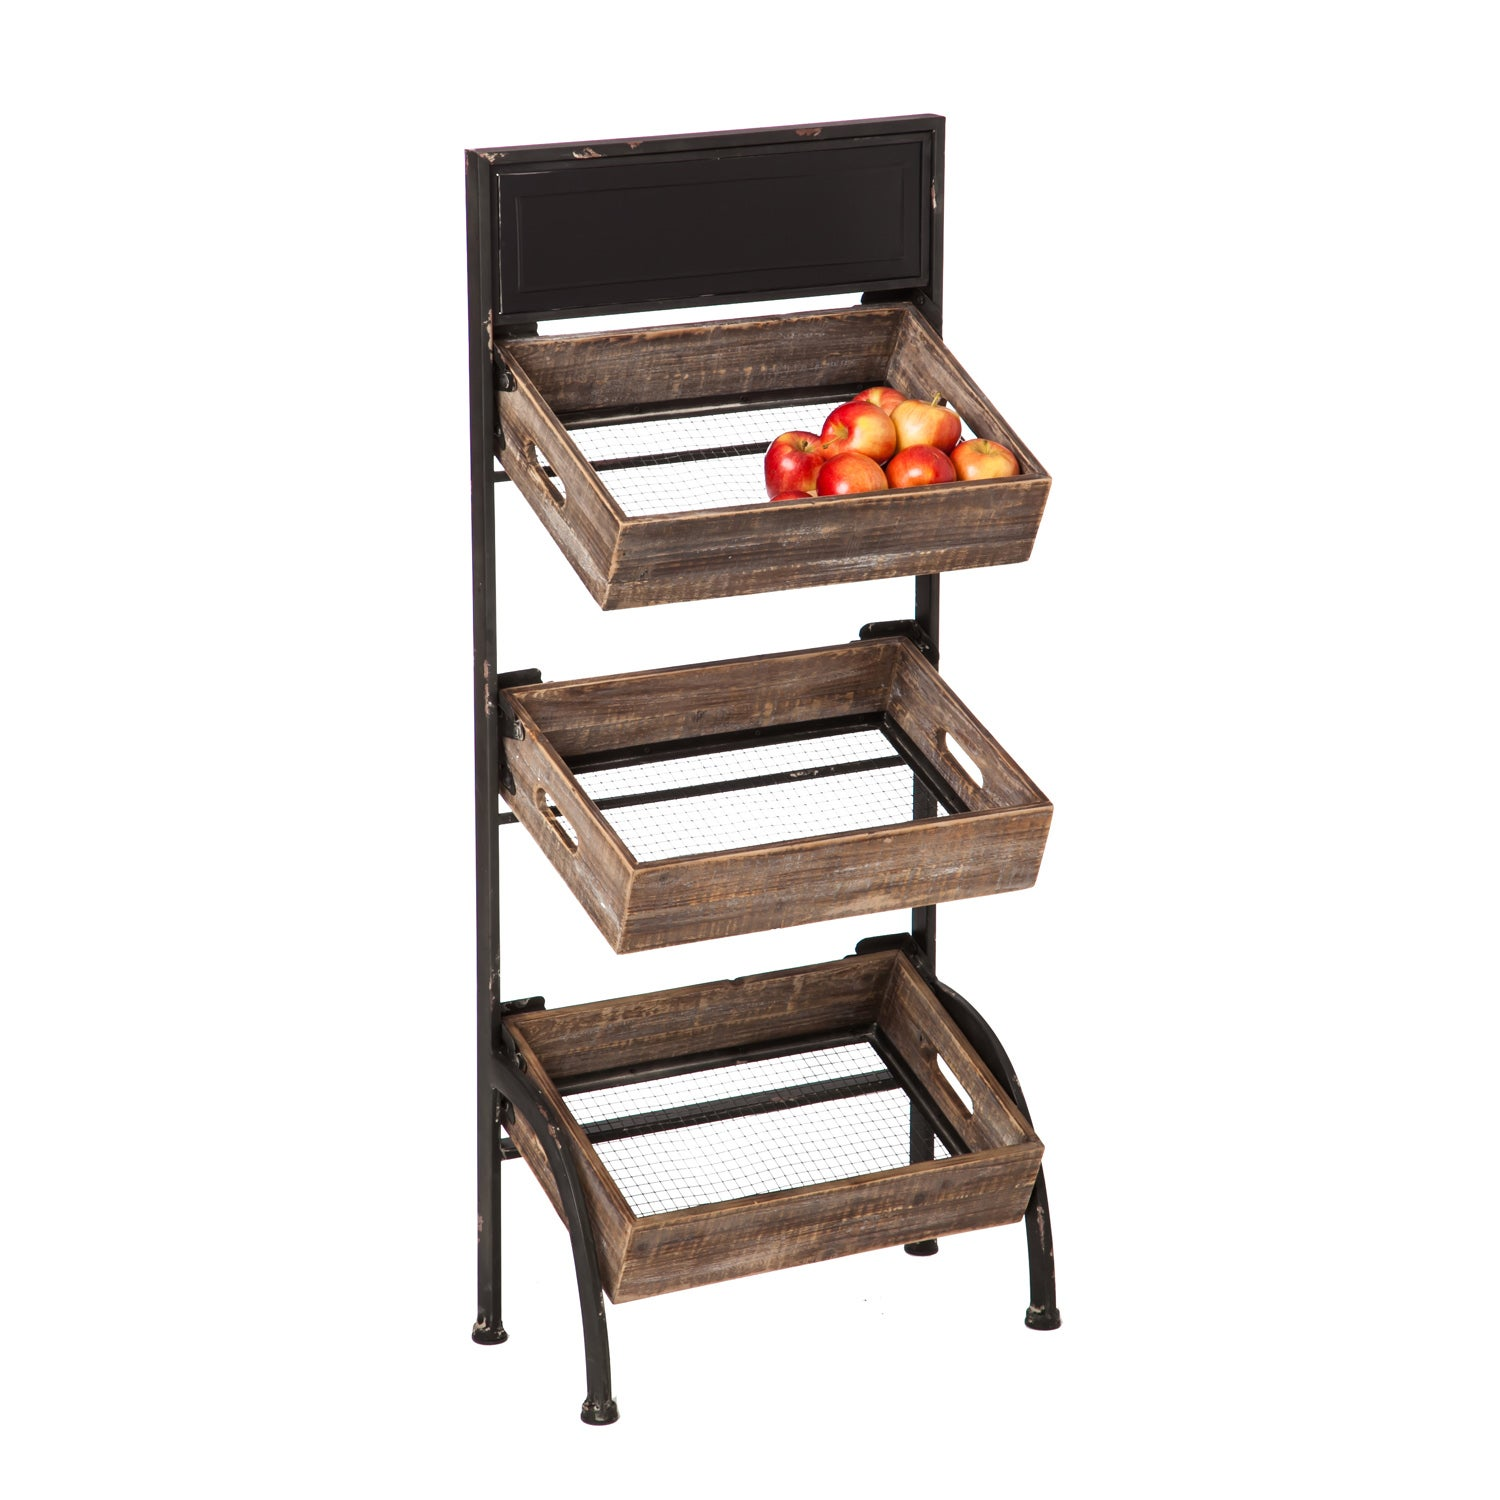 Personalizable Wood and Metal Storage Rack